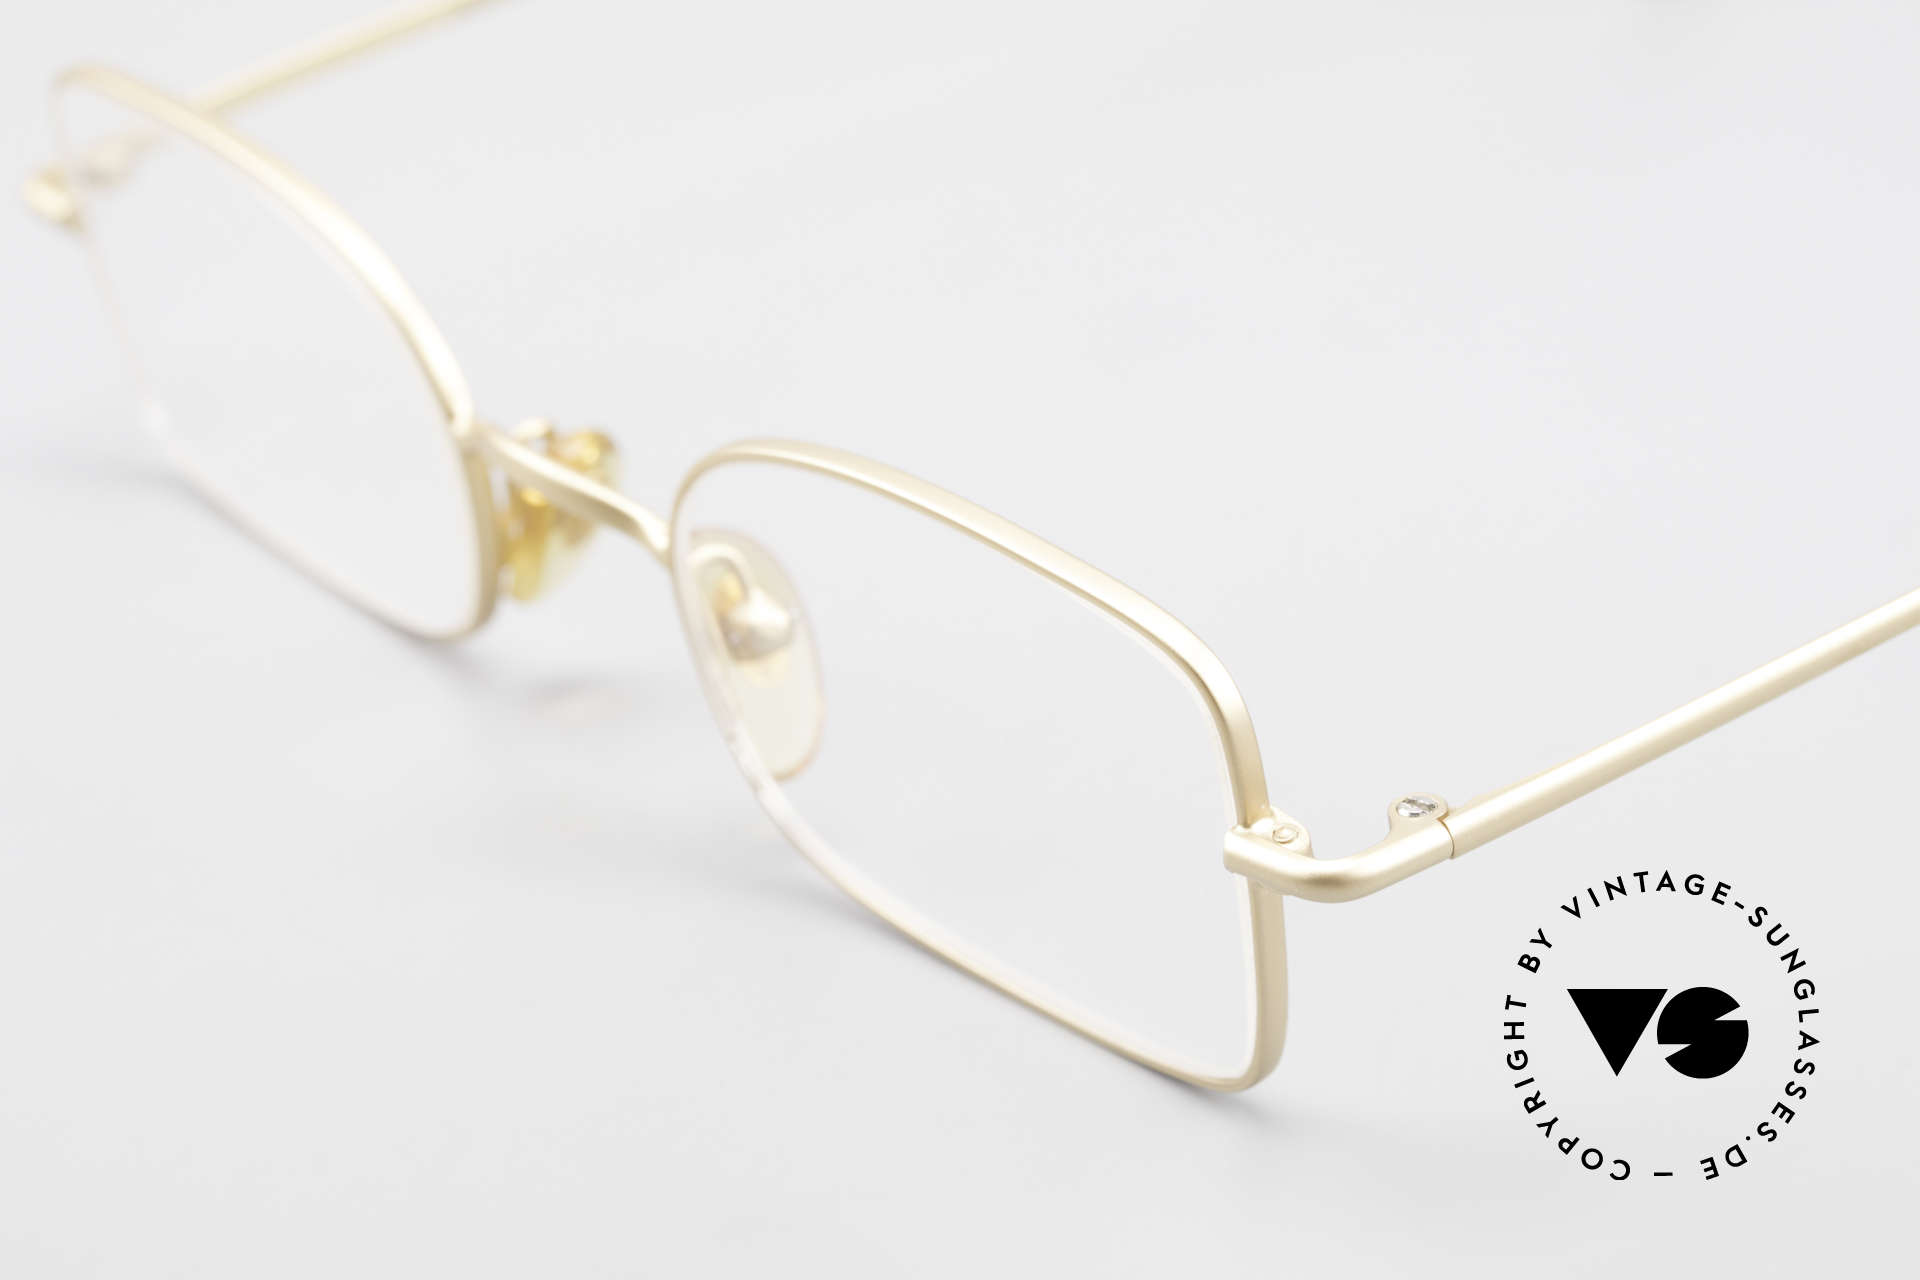 W Proksch's M19/9 Orig 90's Avantgarde Glasses, since 1998 the company Kaneko produces licensed, Made for Men and Women